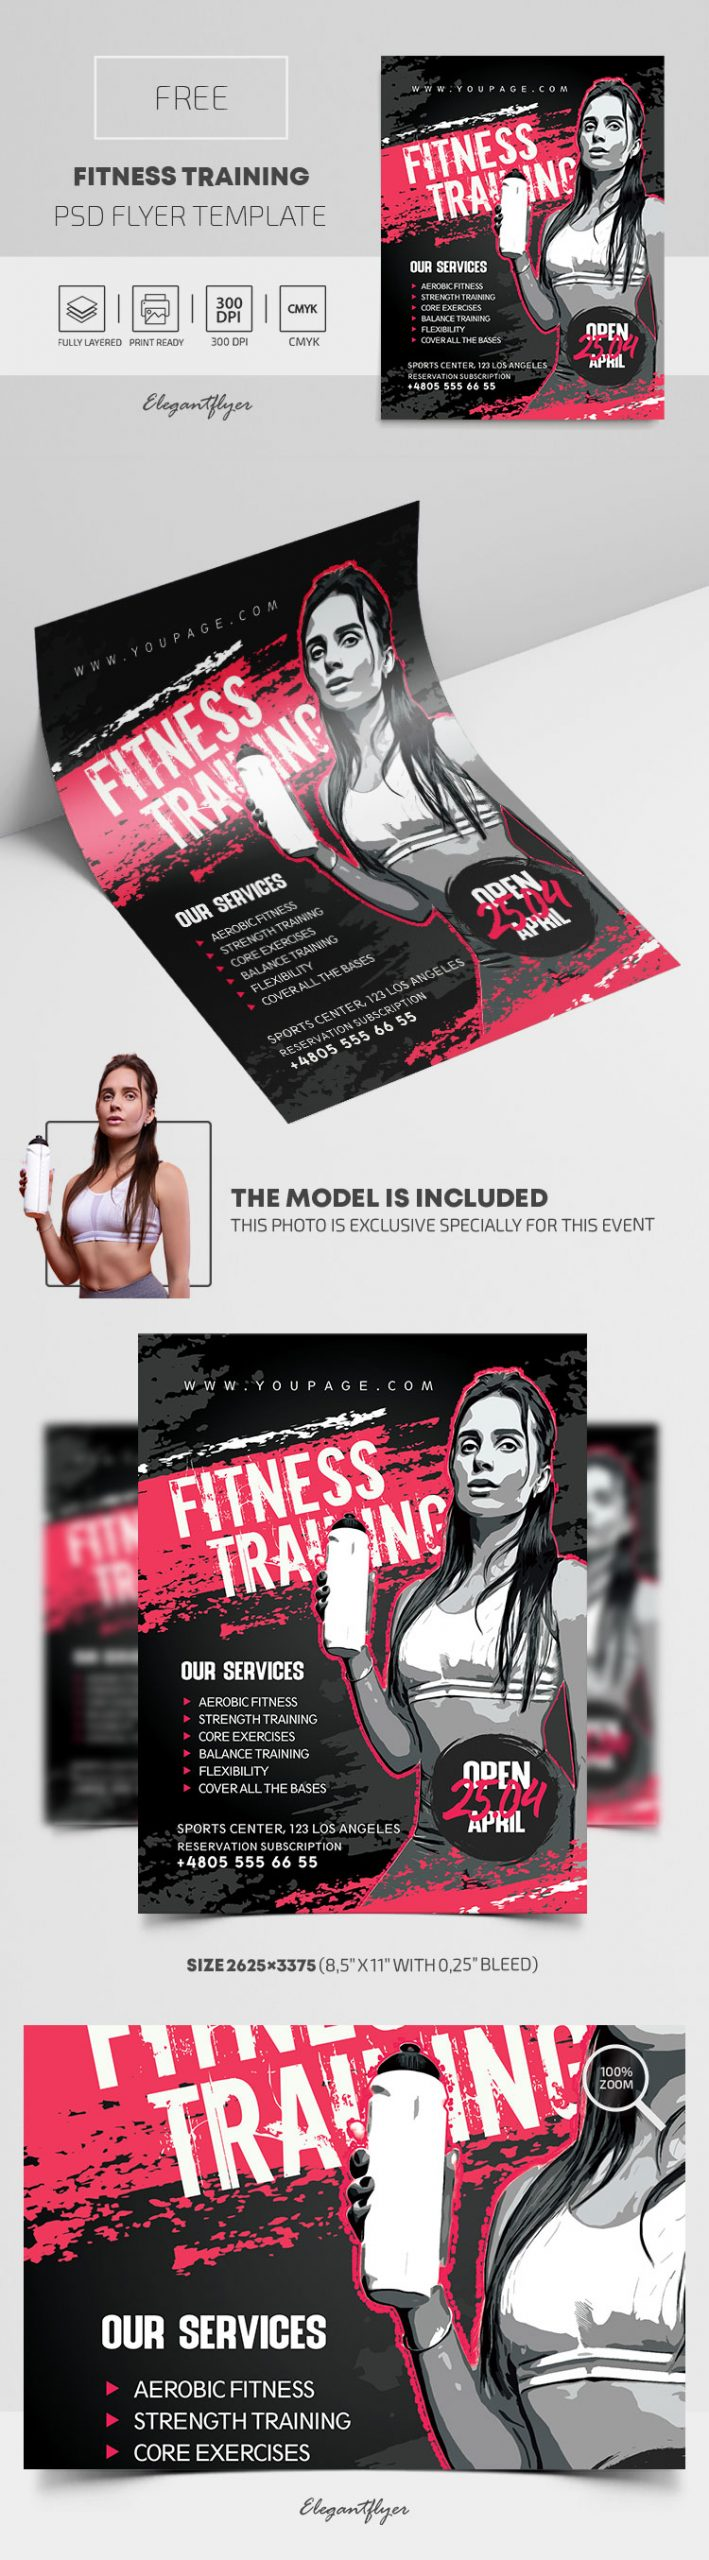 Fitness Training – Free PSD Flyer Template